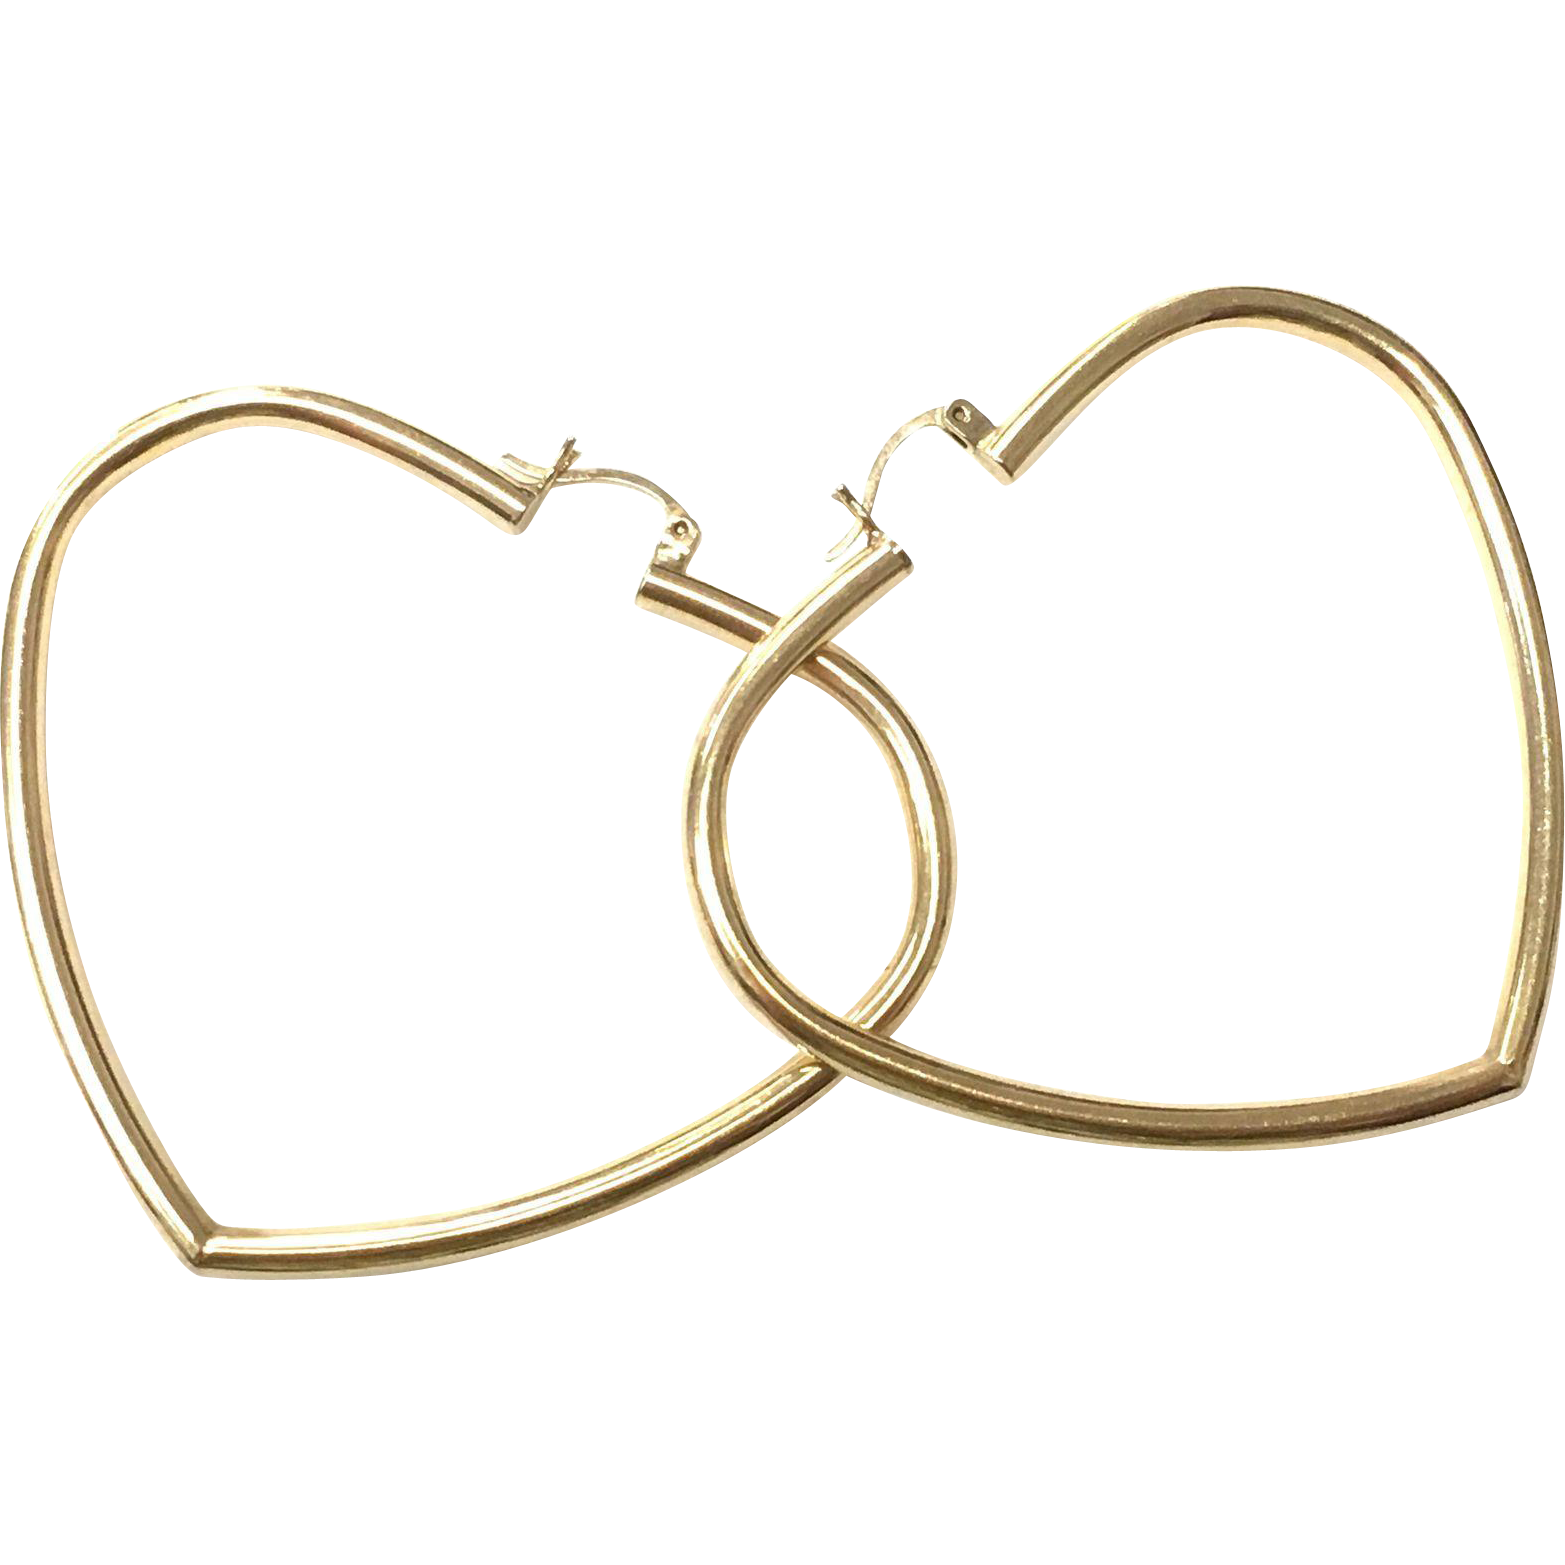 Vintage 14k Yellow Gold Large Heart shaped Hoop Earrings